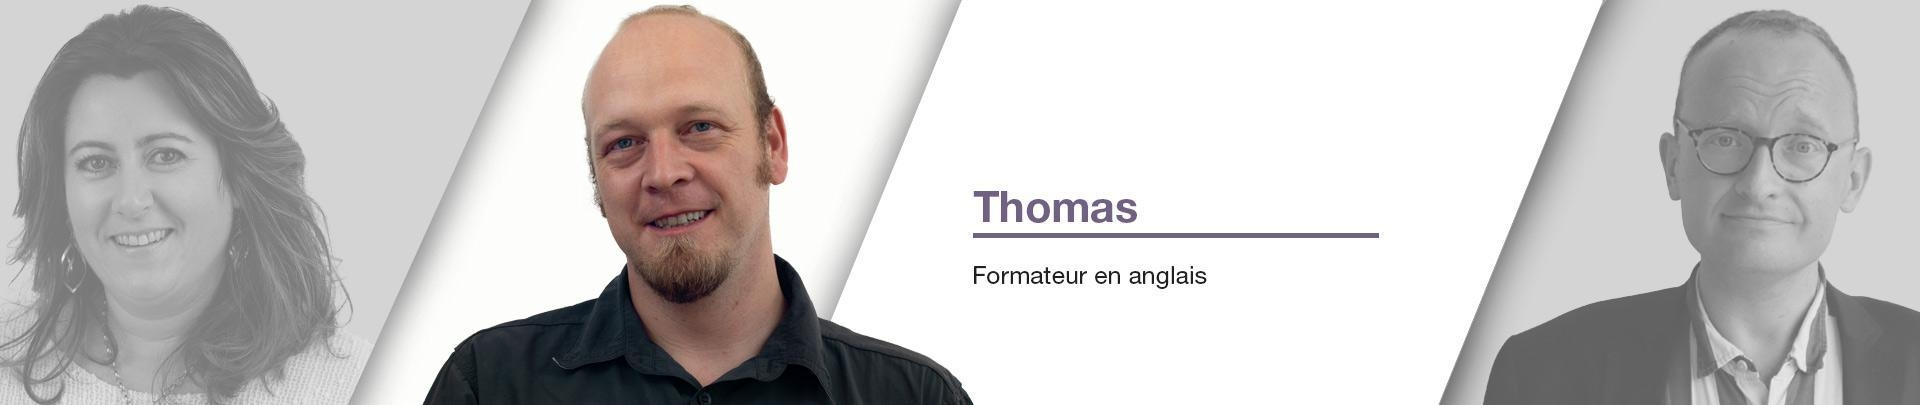 Thomas Throup - Formateur en anglais